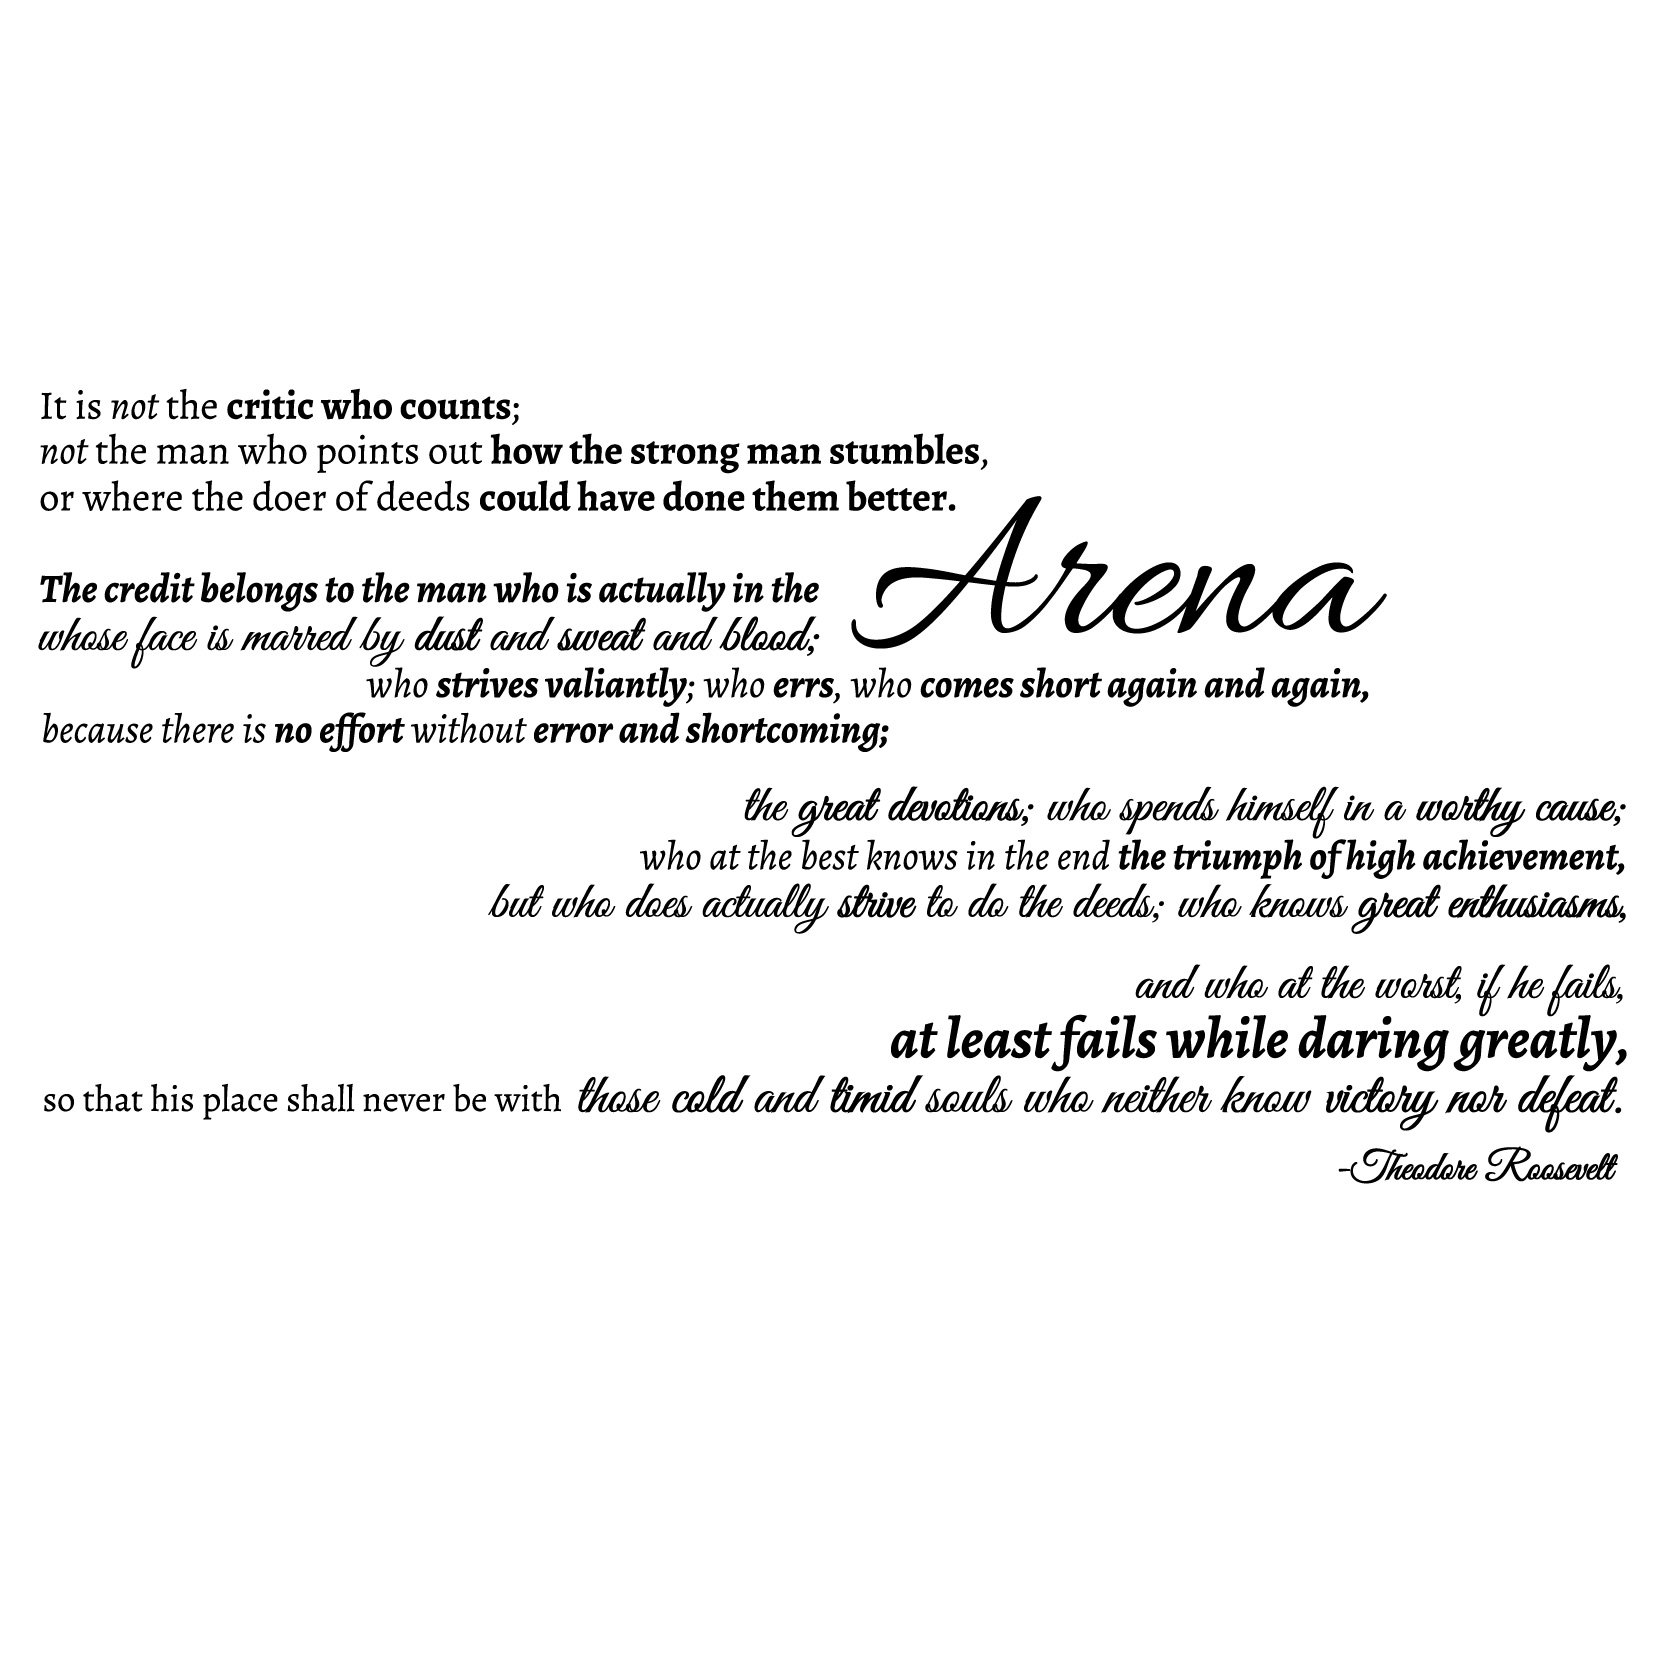 The Man in the Arena Quote - Large in Black - Vinyl Wall Art Decal for Homes, Offices, Kids Rooms, Nurseries, Schools, High Schools, Colleges, Universities, Interior Designers, Architects, Remodelers